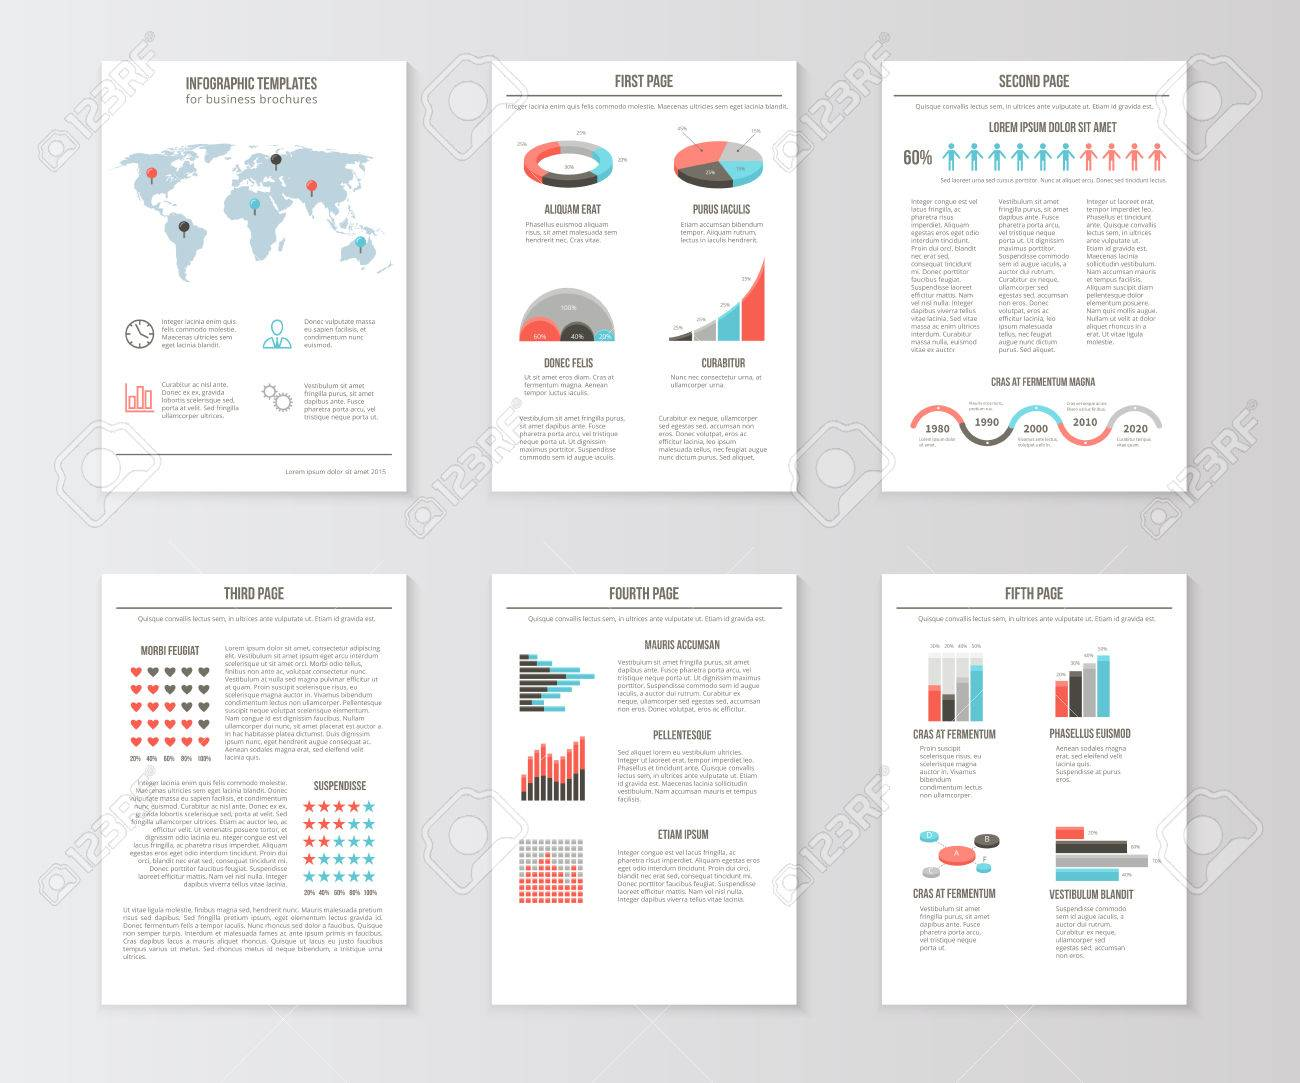 Business templates for pages boatremyeaton business templates for pages cheaphphosting Images